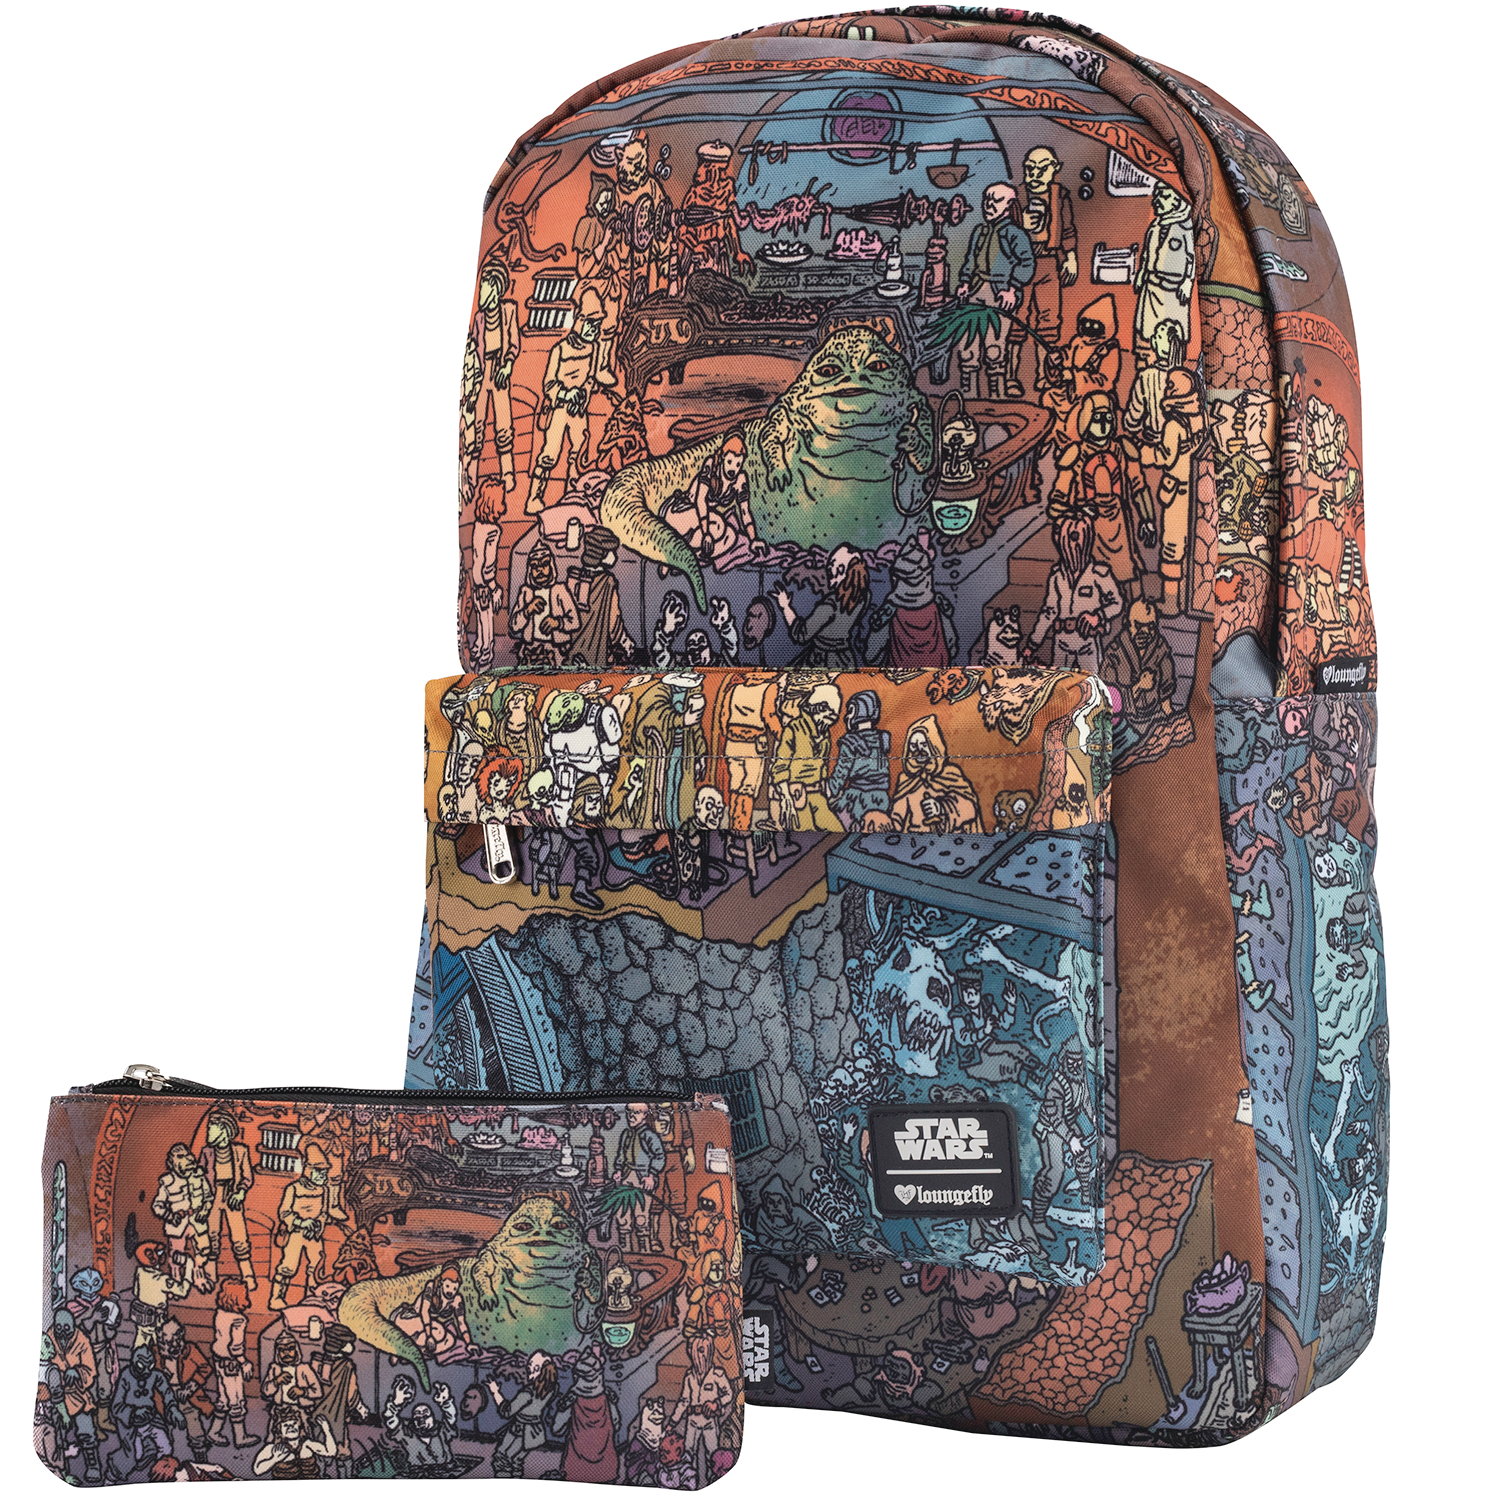 STAR WARS JABBAS PALACE PRINT BACKPACK AND PENCIL CASE